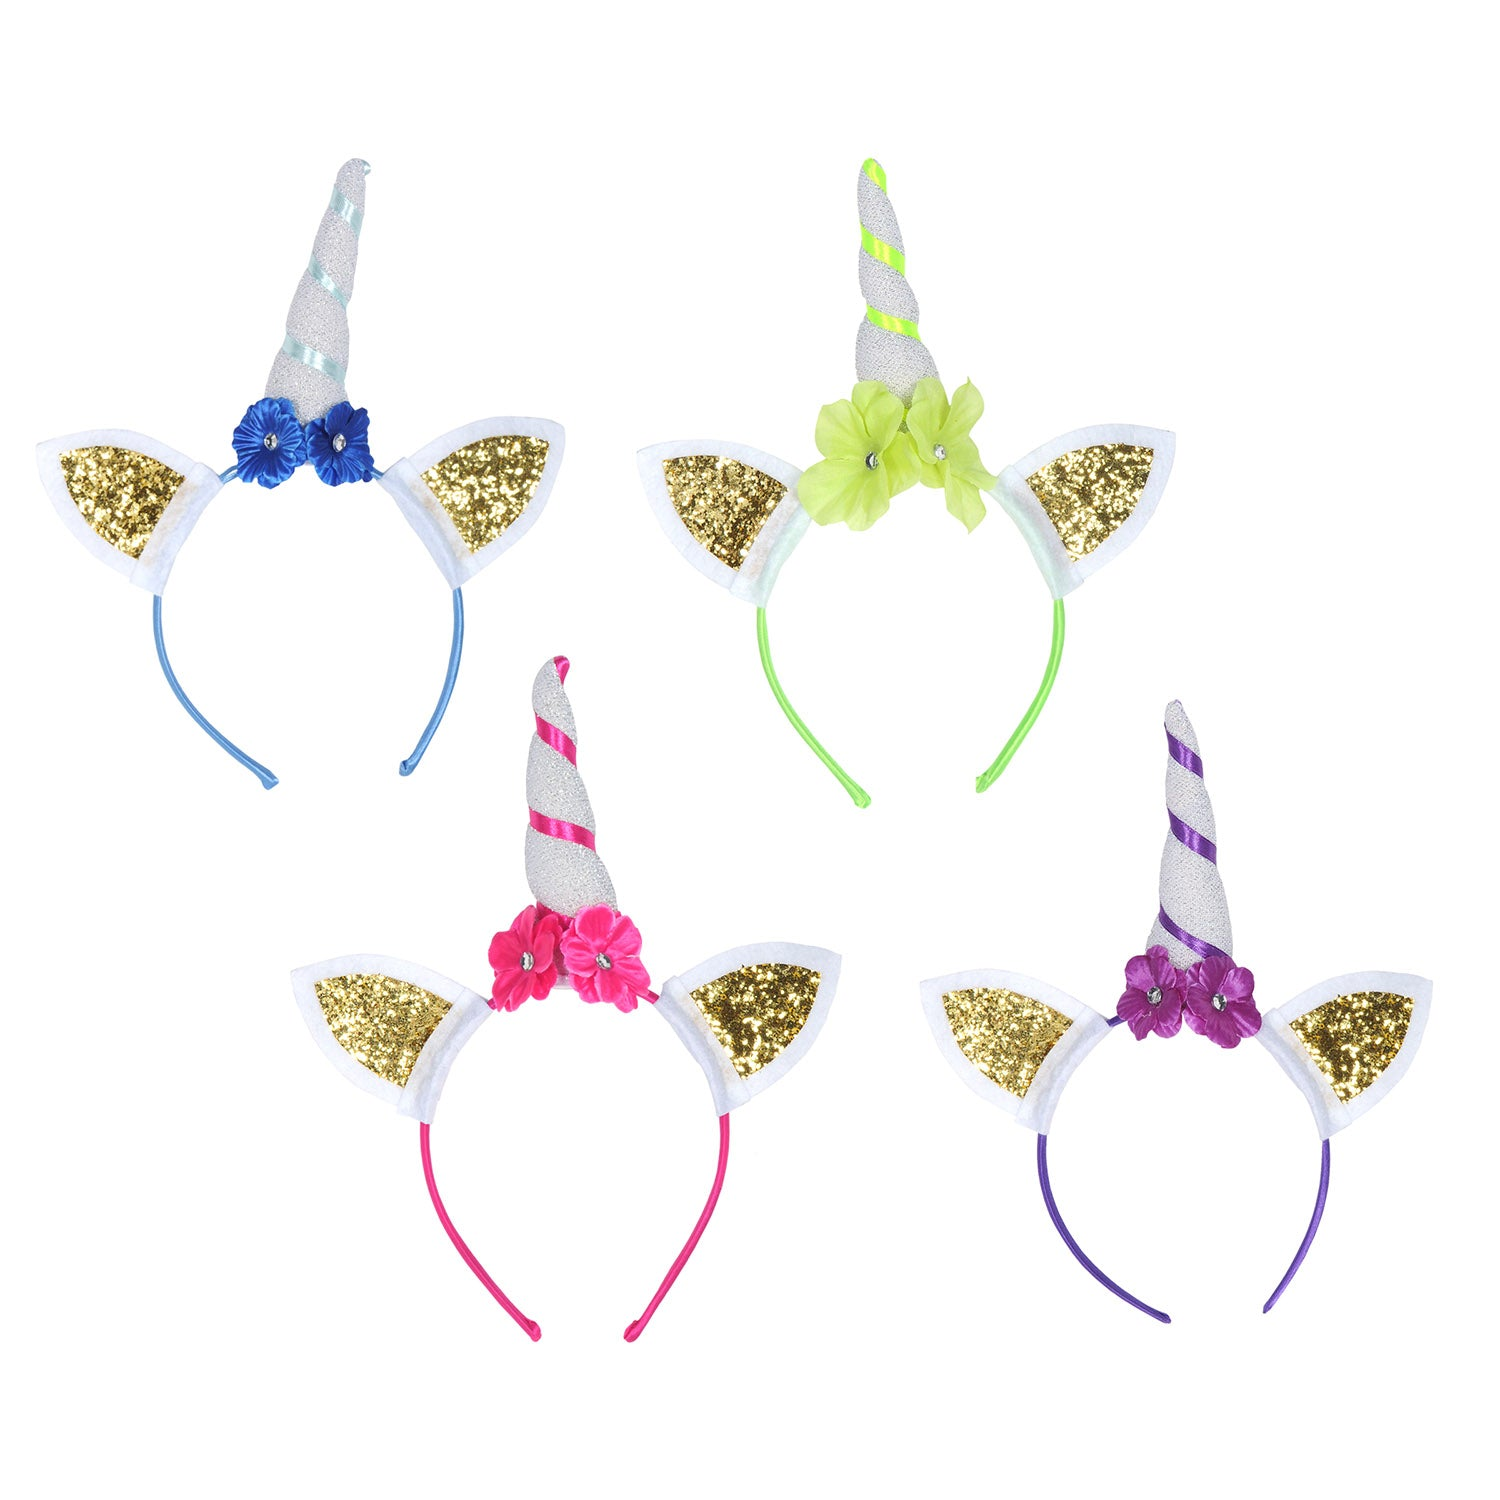 Glittered Unicorn Headbands (4/Pkg) by Beistle - Unicorn Theme Decorations